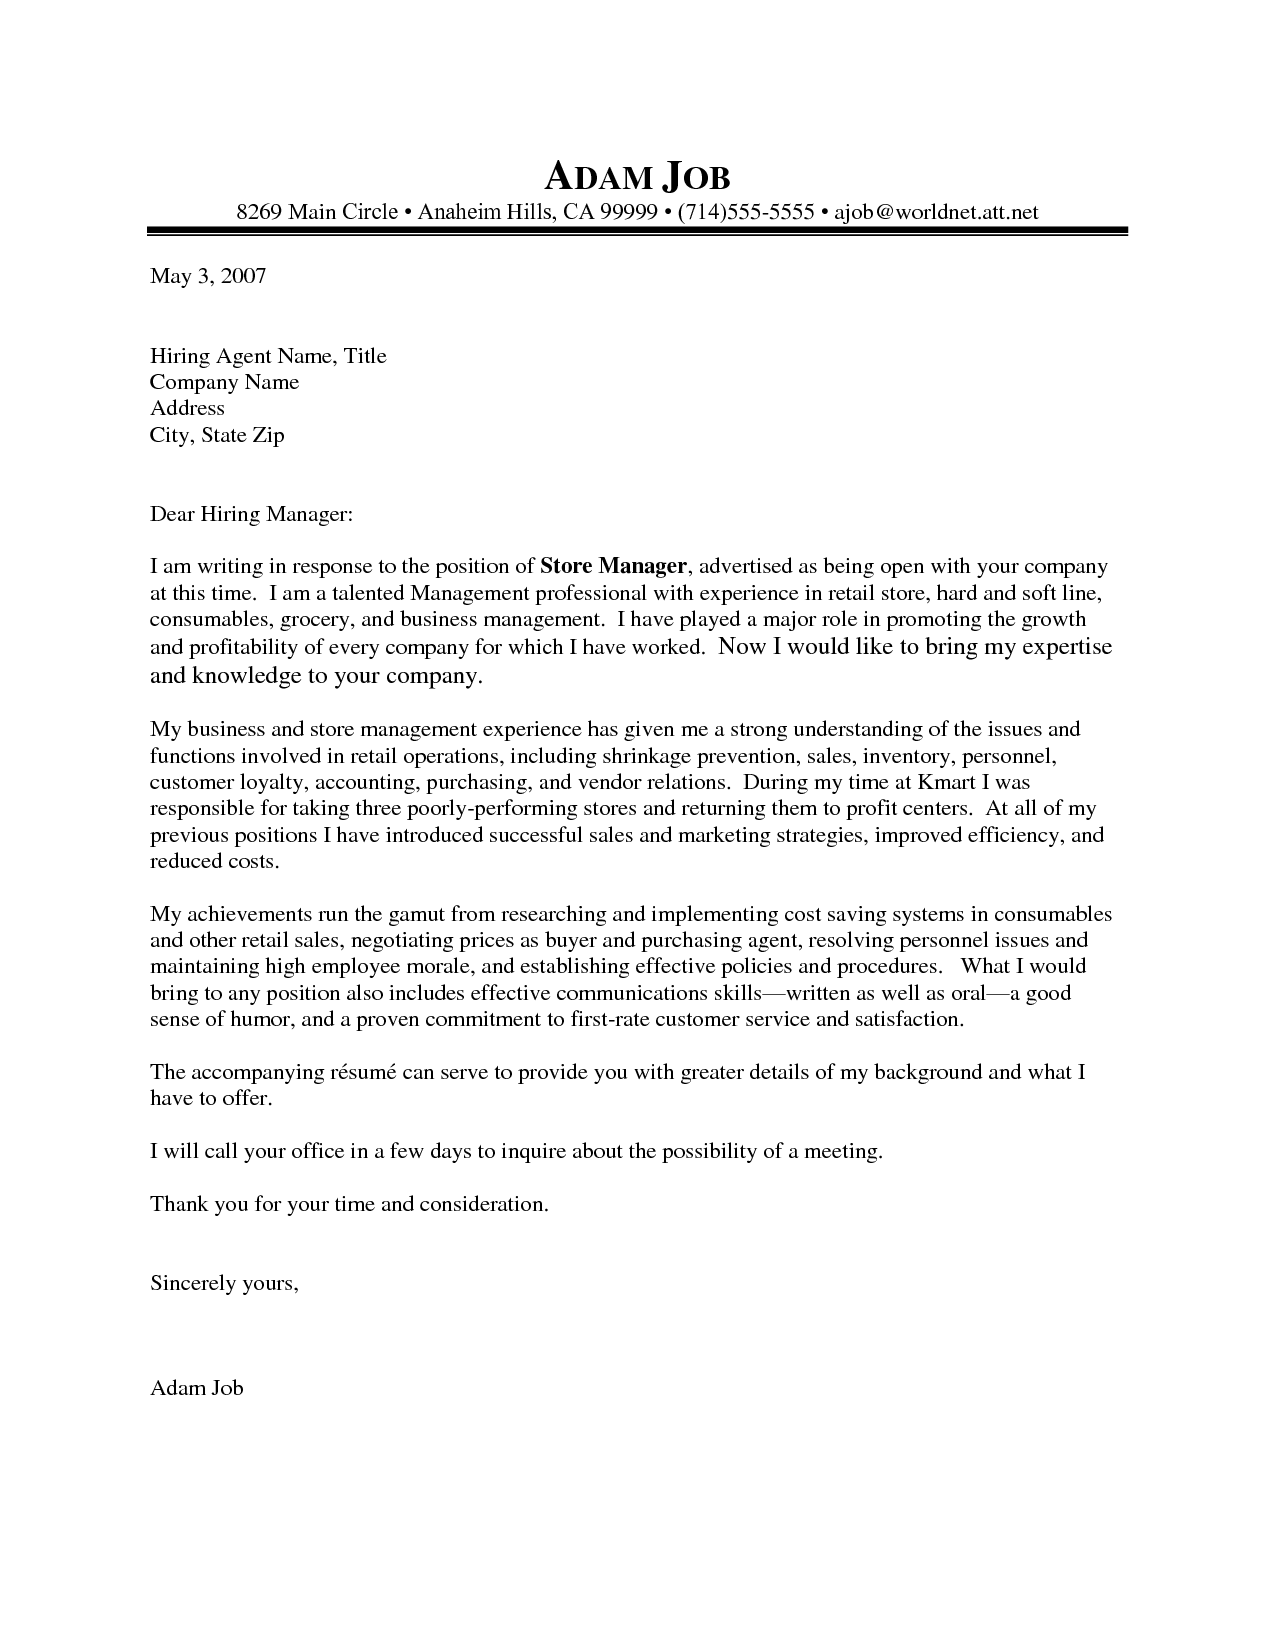 Retail Cover Letter Application Letter Sample For Any Position College Admissions